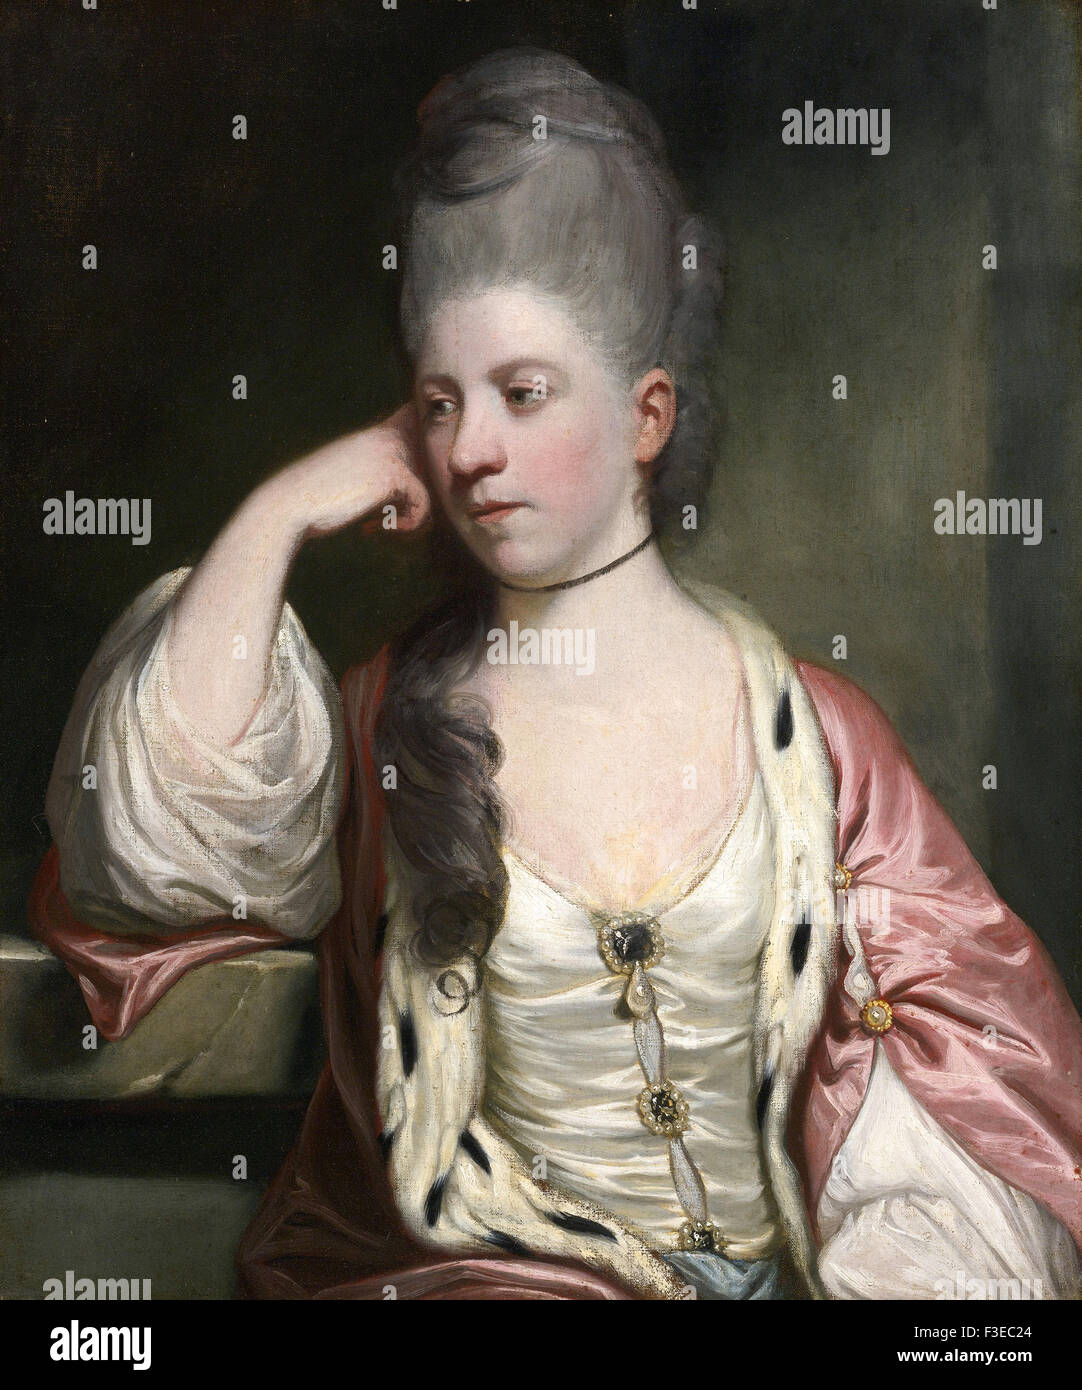 Sir Joshua Reynolds - Portrait of Miss Anne Mead - Stock Image